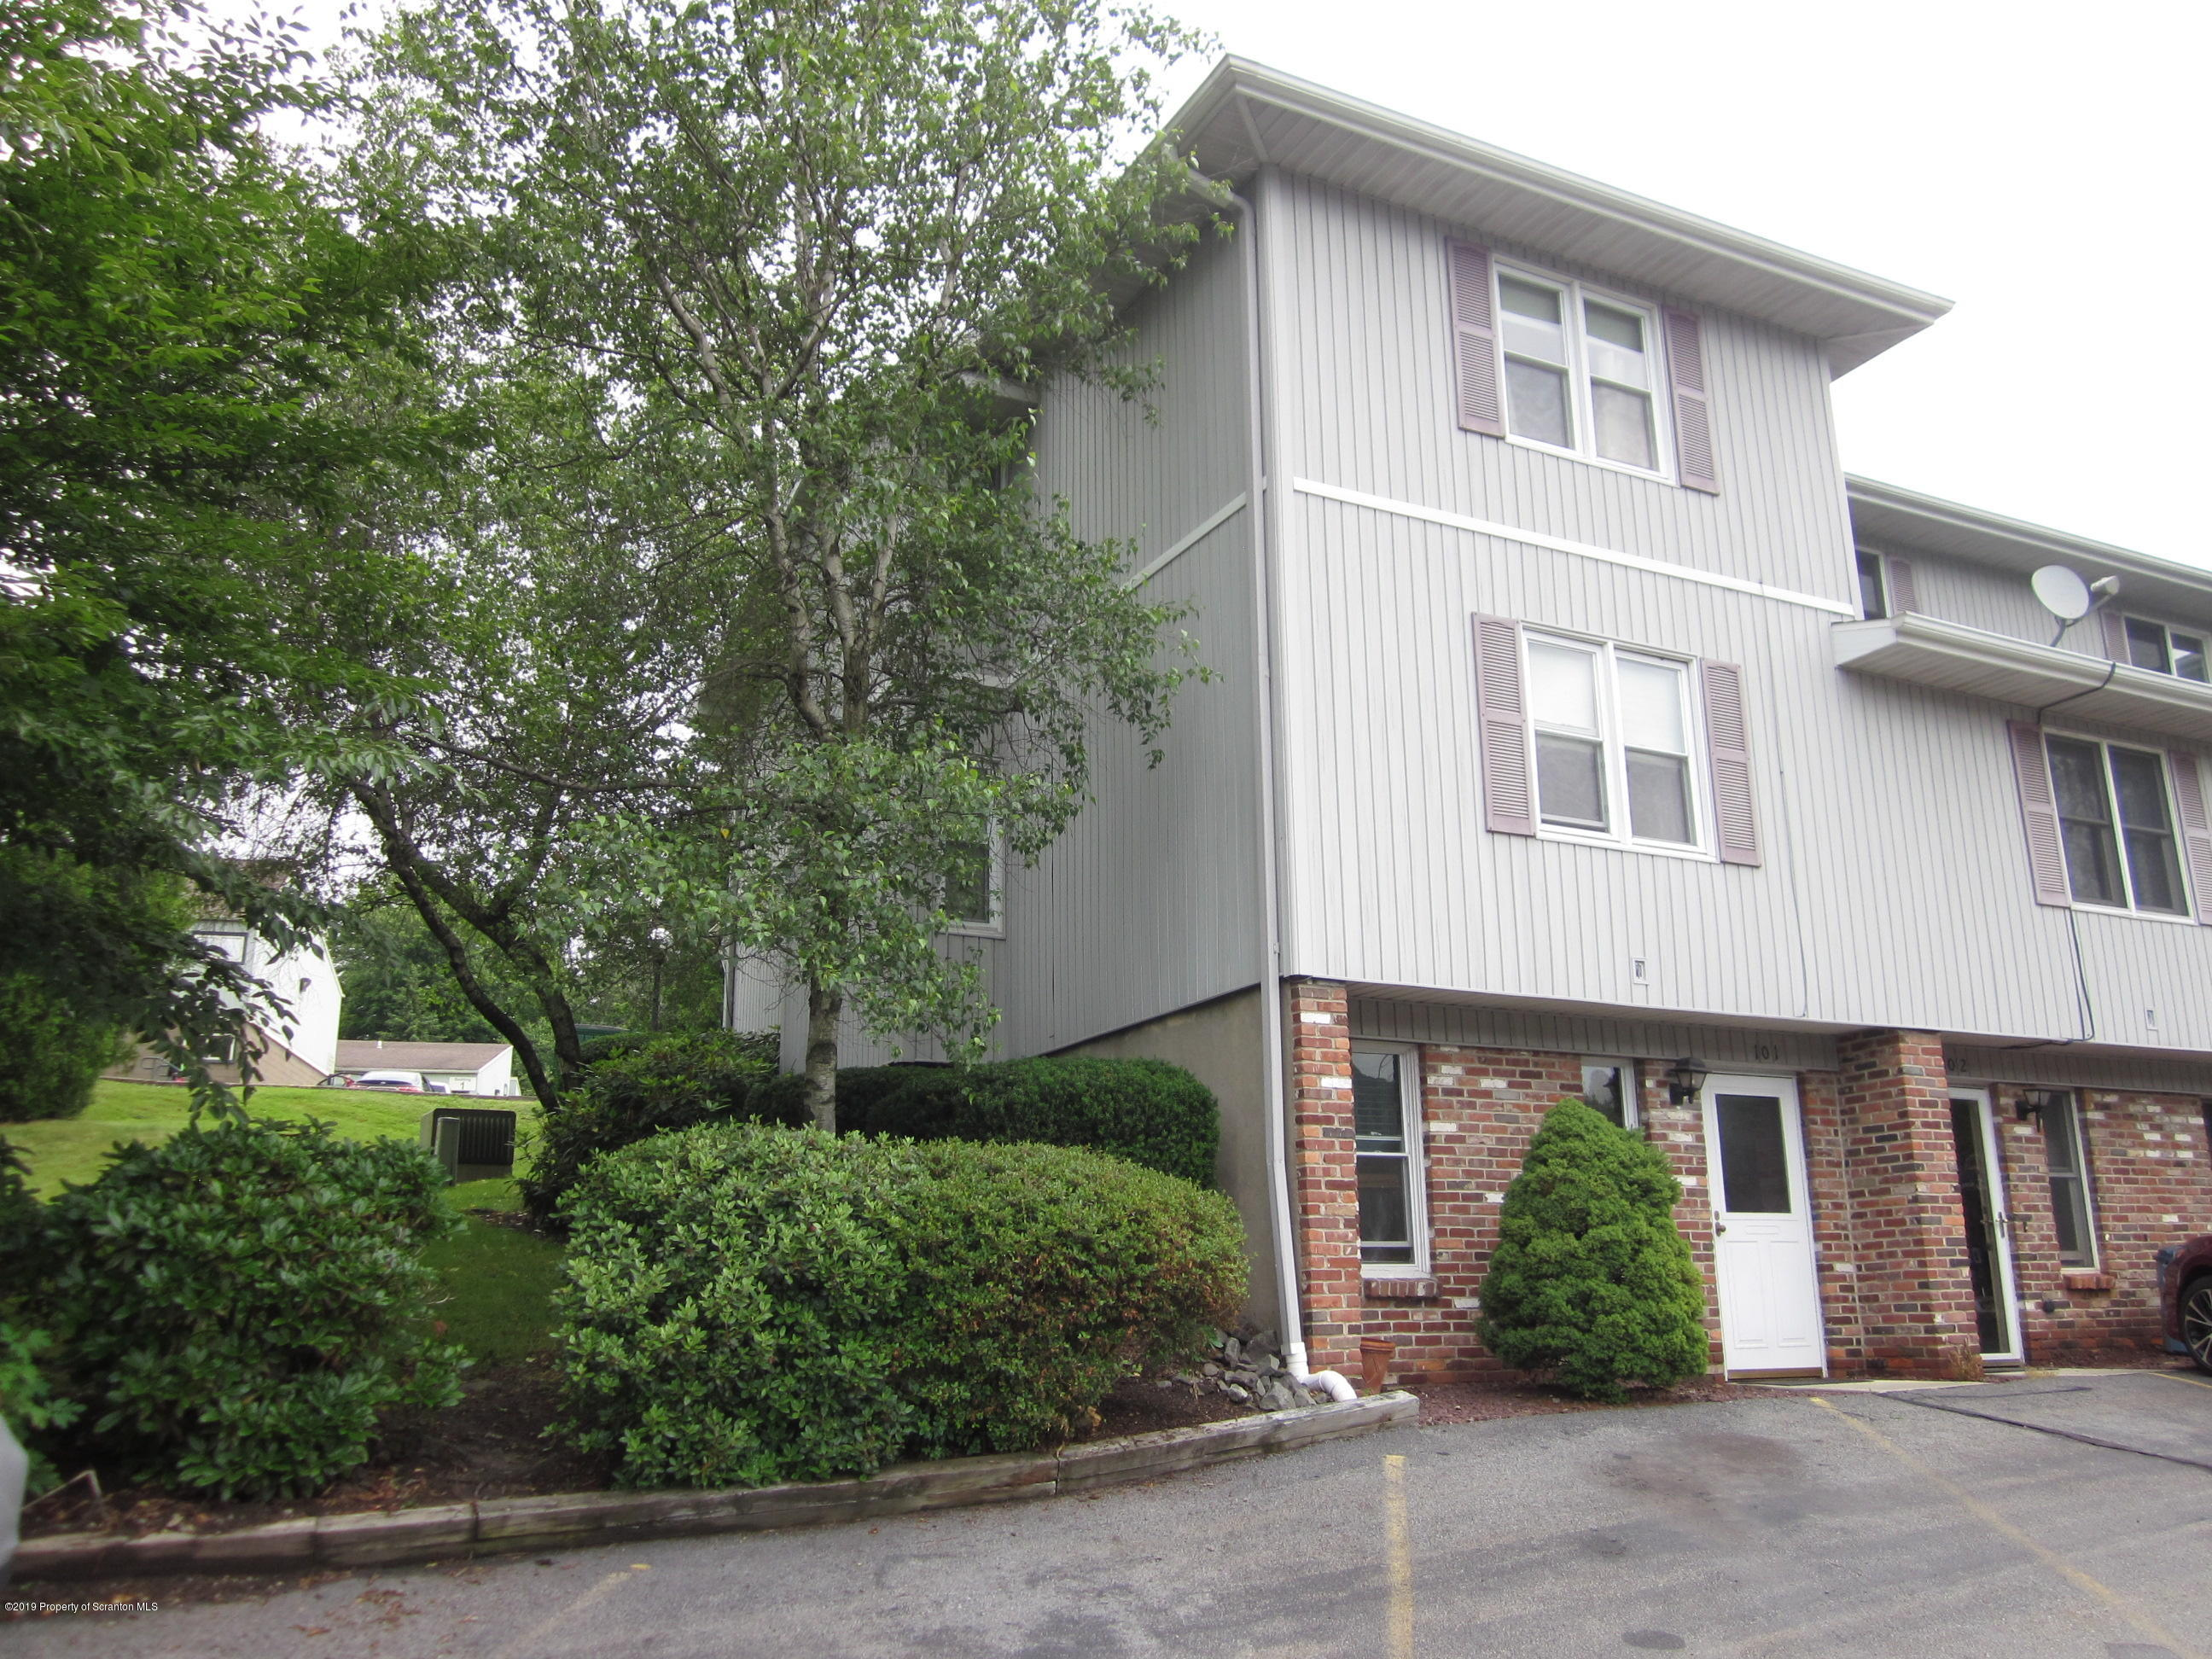 101 Abington Gardens, South Abington Twp, Pennsylvania 18411, 3 Bedrooms Bedrooms, 7 Rooms Rooms,3 BathroomsBathrooms,Residential - condo/townhome,For Sale,Abington Gardens,19-2941